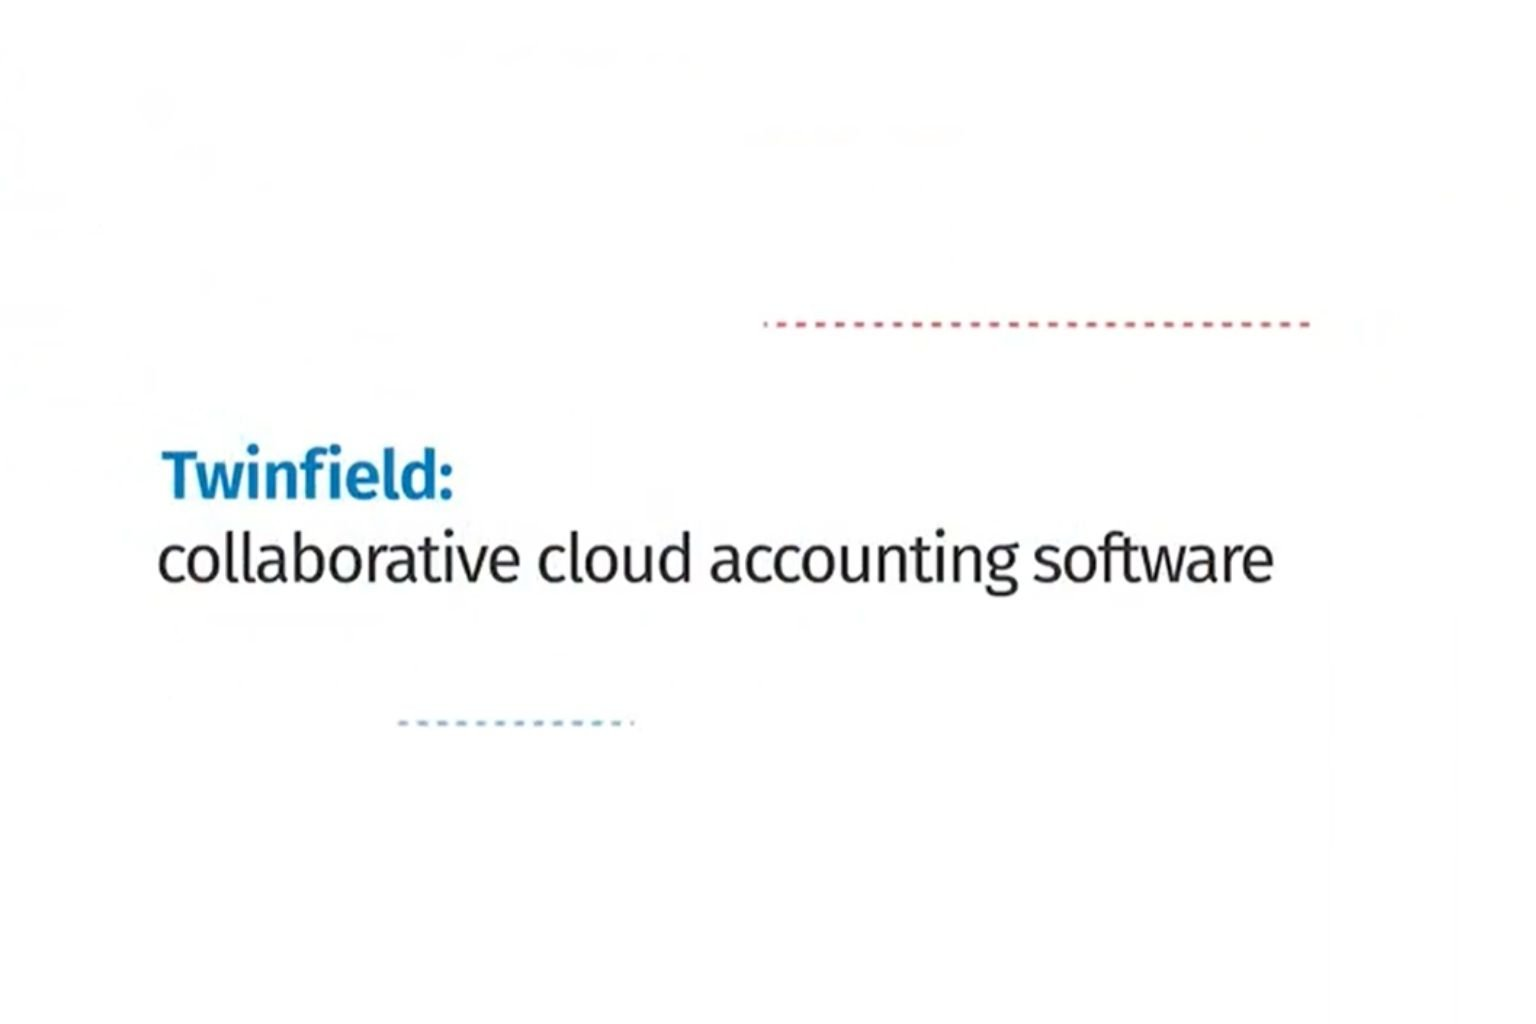 Twinfield collaborative cloud software